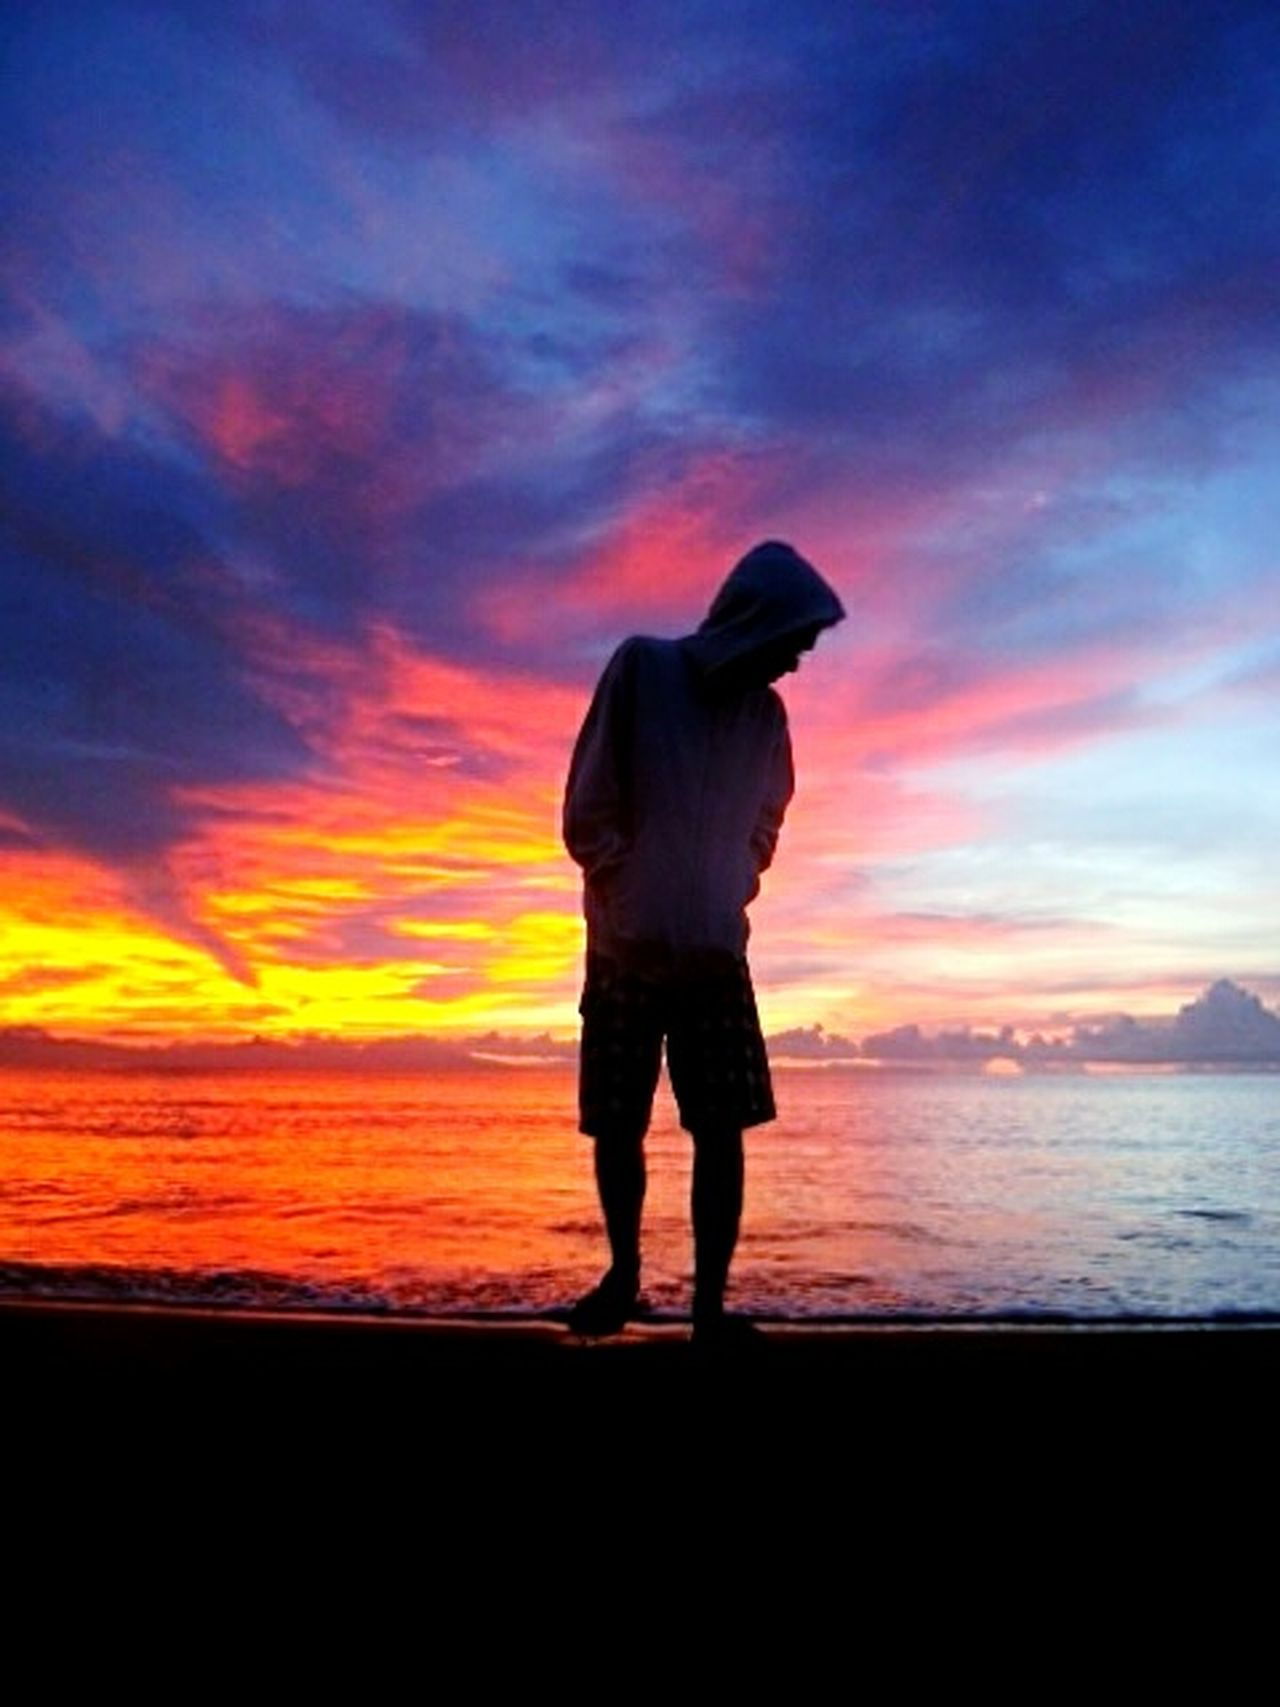 Sunrise Full Length Sunset Standing One Person One Man Only Only Men Men Silhouette Cloud - Sky Nature Adult Sky Business People Looking Down Outdoors Beauty In Nature EyeEmNewHere